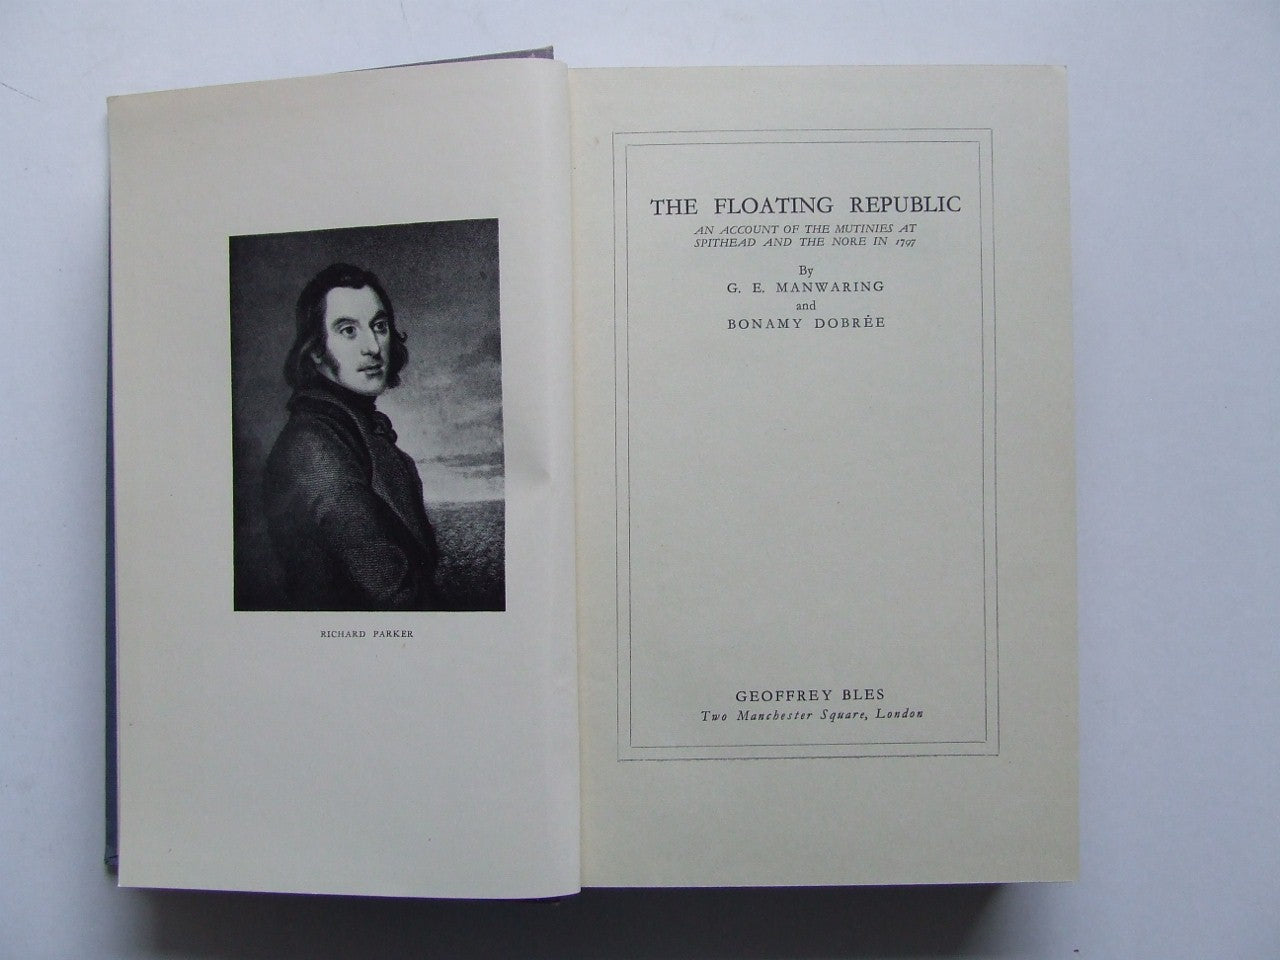 The Floating Republic. an account of the mutinies at Spithead and the Nore in 1797